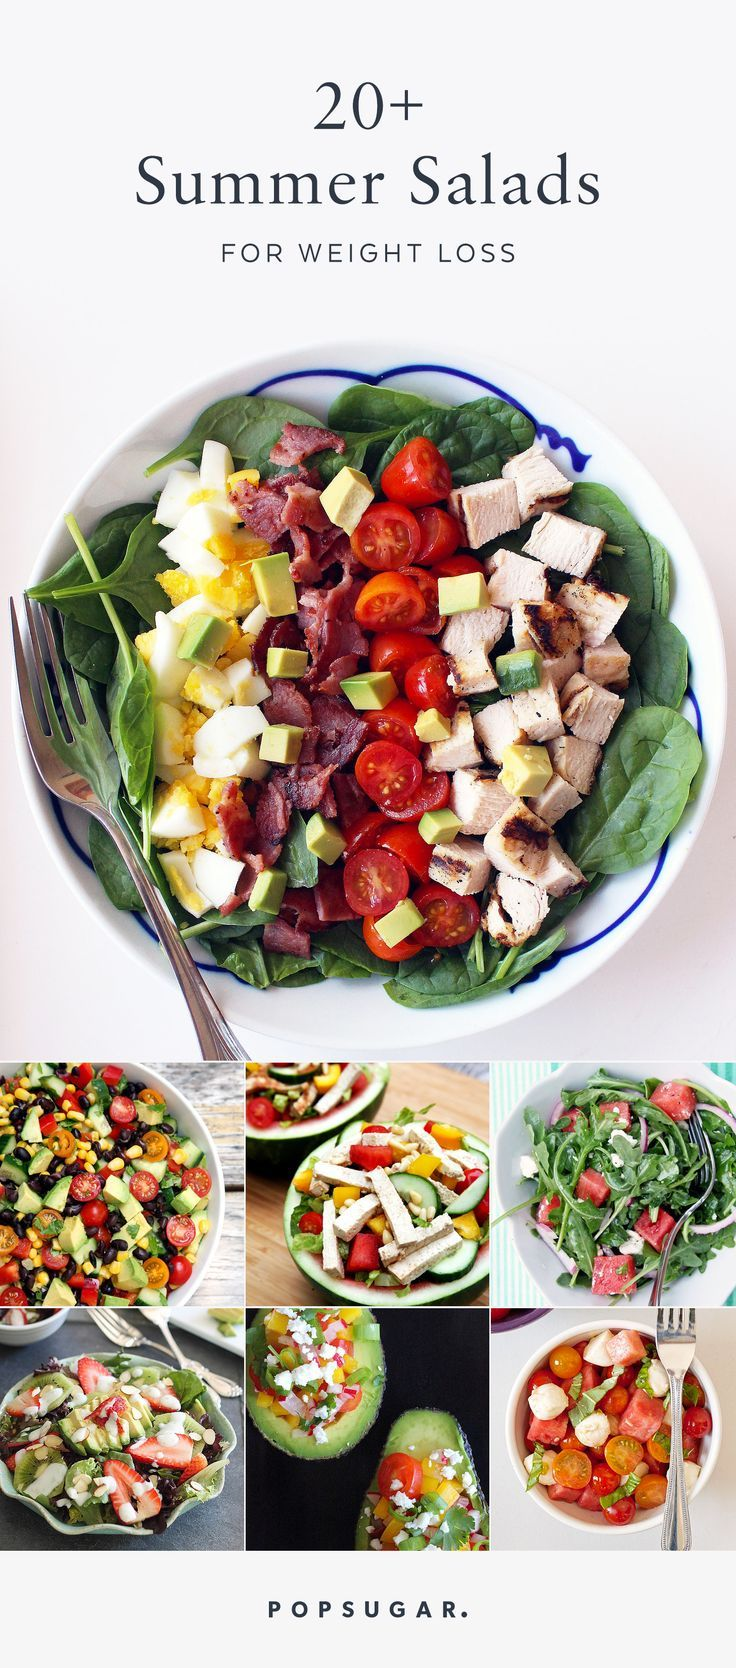 If you're looking to lose weight, salads are bound to be a big part of your life. Luckily, there's no better season than Summer to enjoy the bounty of produce the season has to offer! These are 22 of the best Summer salad recipes that won't bore you to tears.